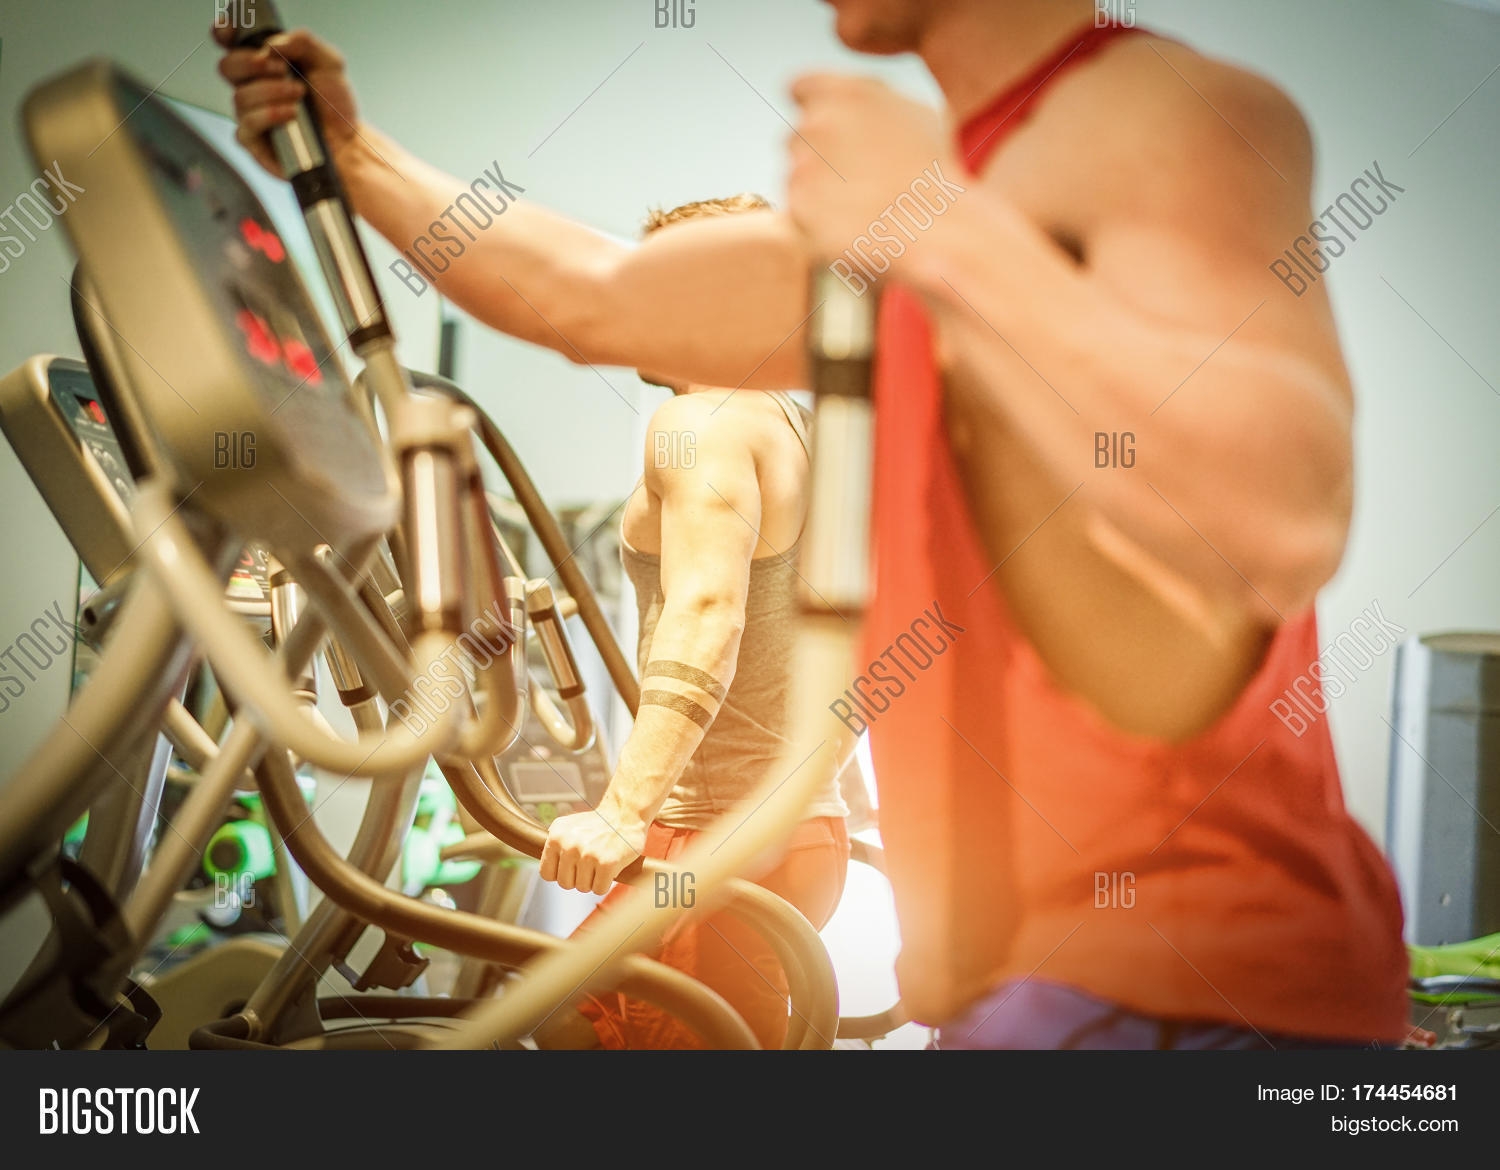 Fitness Men Using Image Photo Free Trial Bigstock